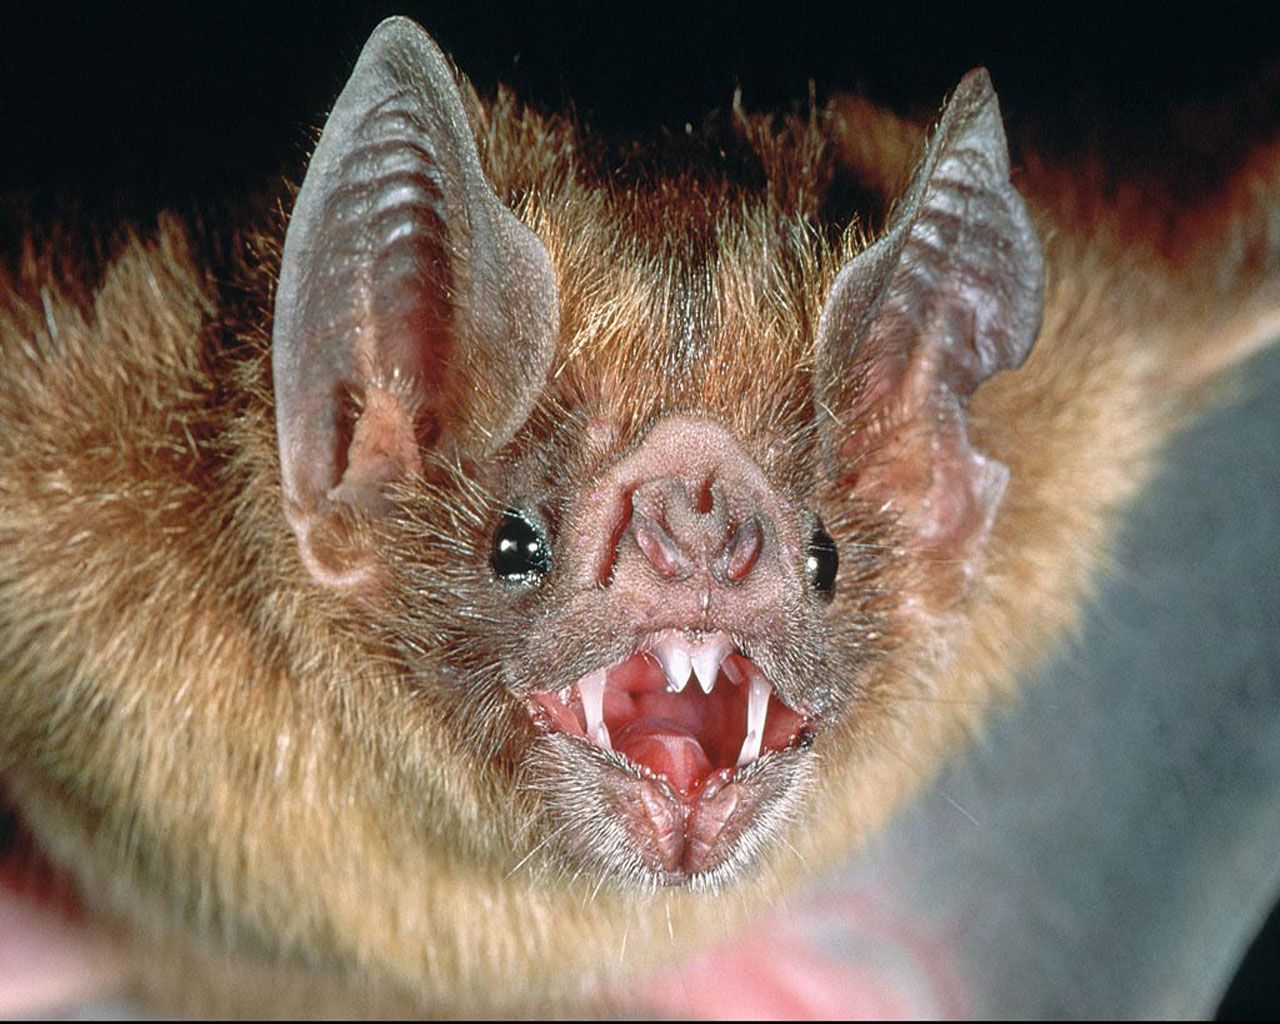 A Close Up Of The Head Vampire Bat Animals Pinterest How To Build Nocturnal Whisker Scary